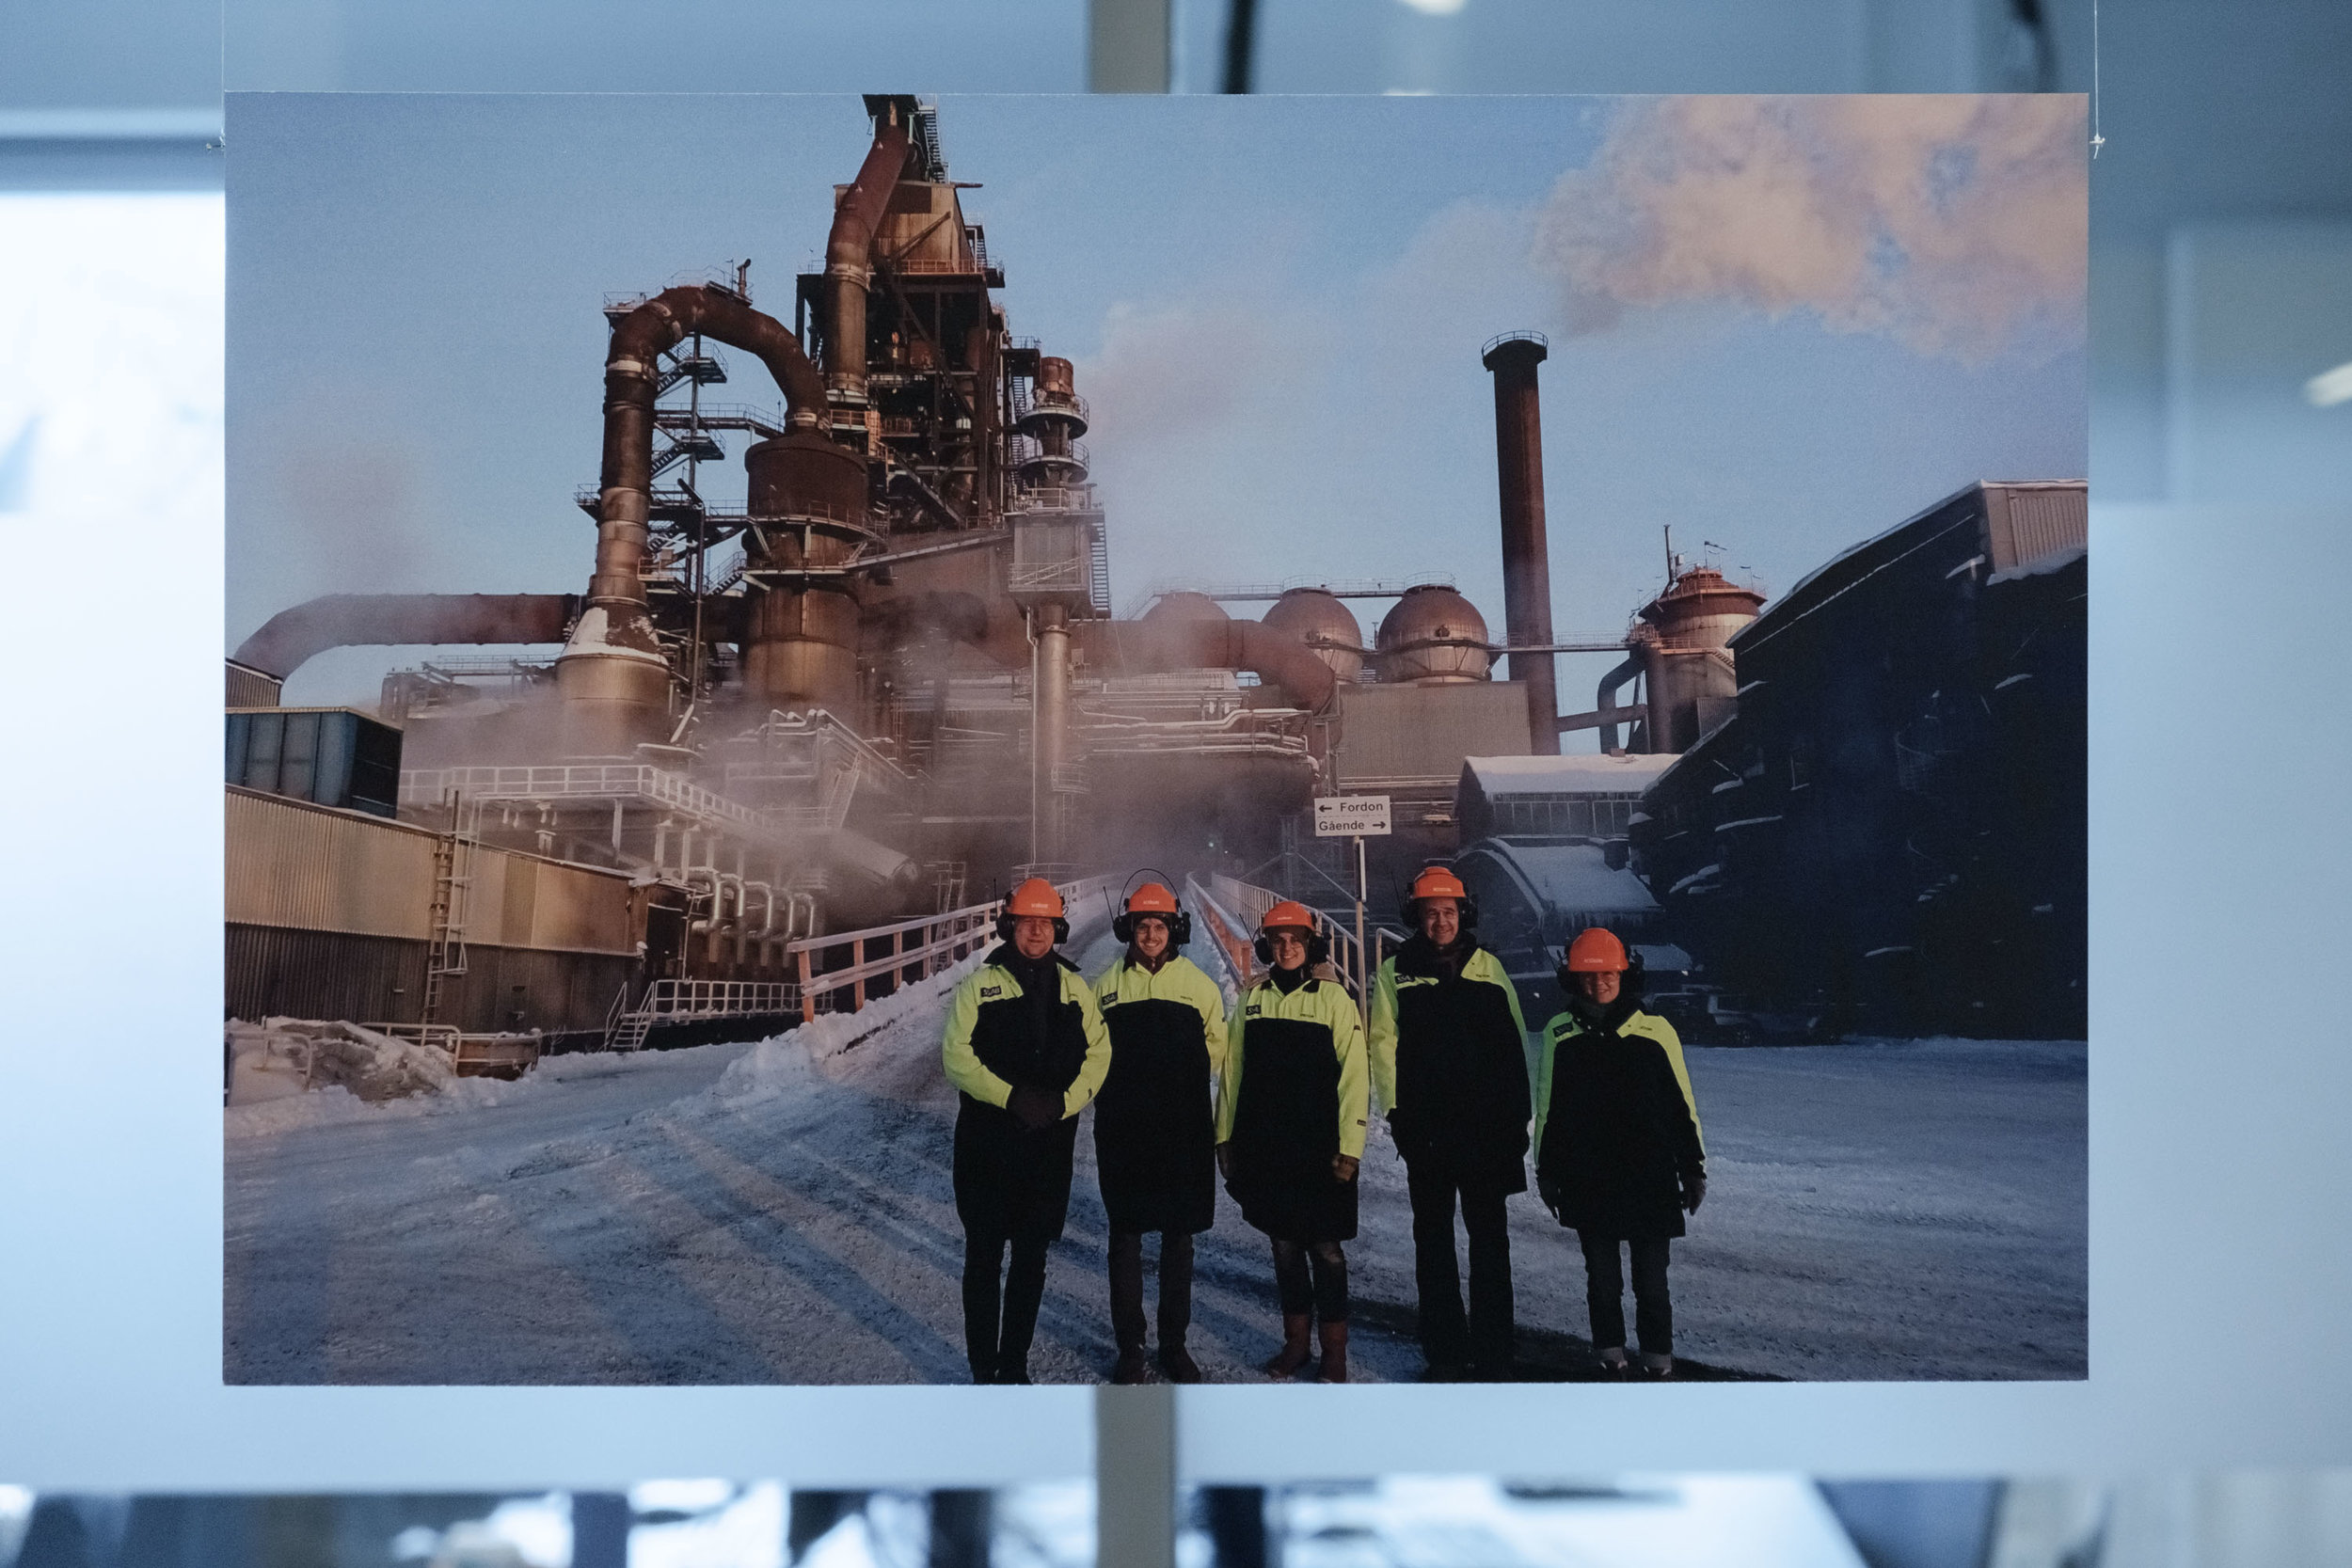 The last Swedish blast furnace, Luleå 2044, photo: private   In 2042 this blast furnace was closed, marking the end of fossil steel production. A team of researchers were visiting to study the dismantling process.